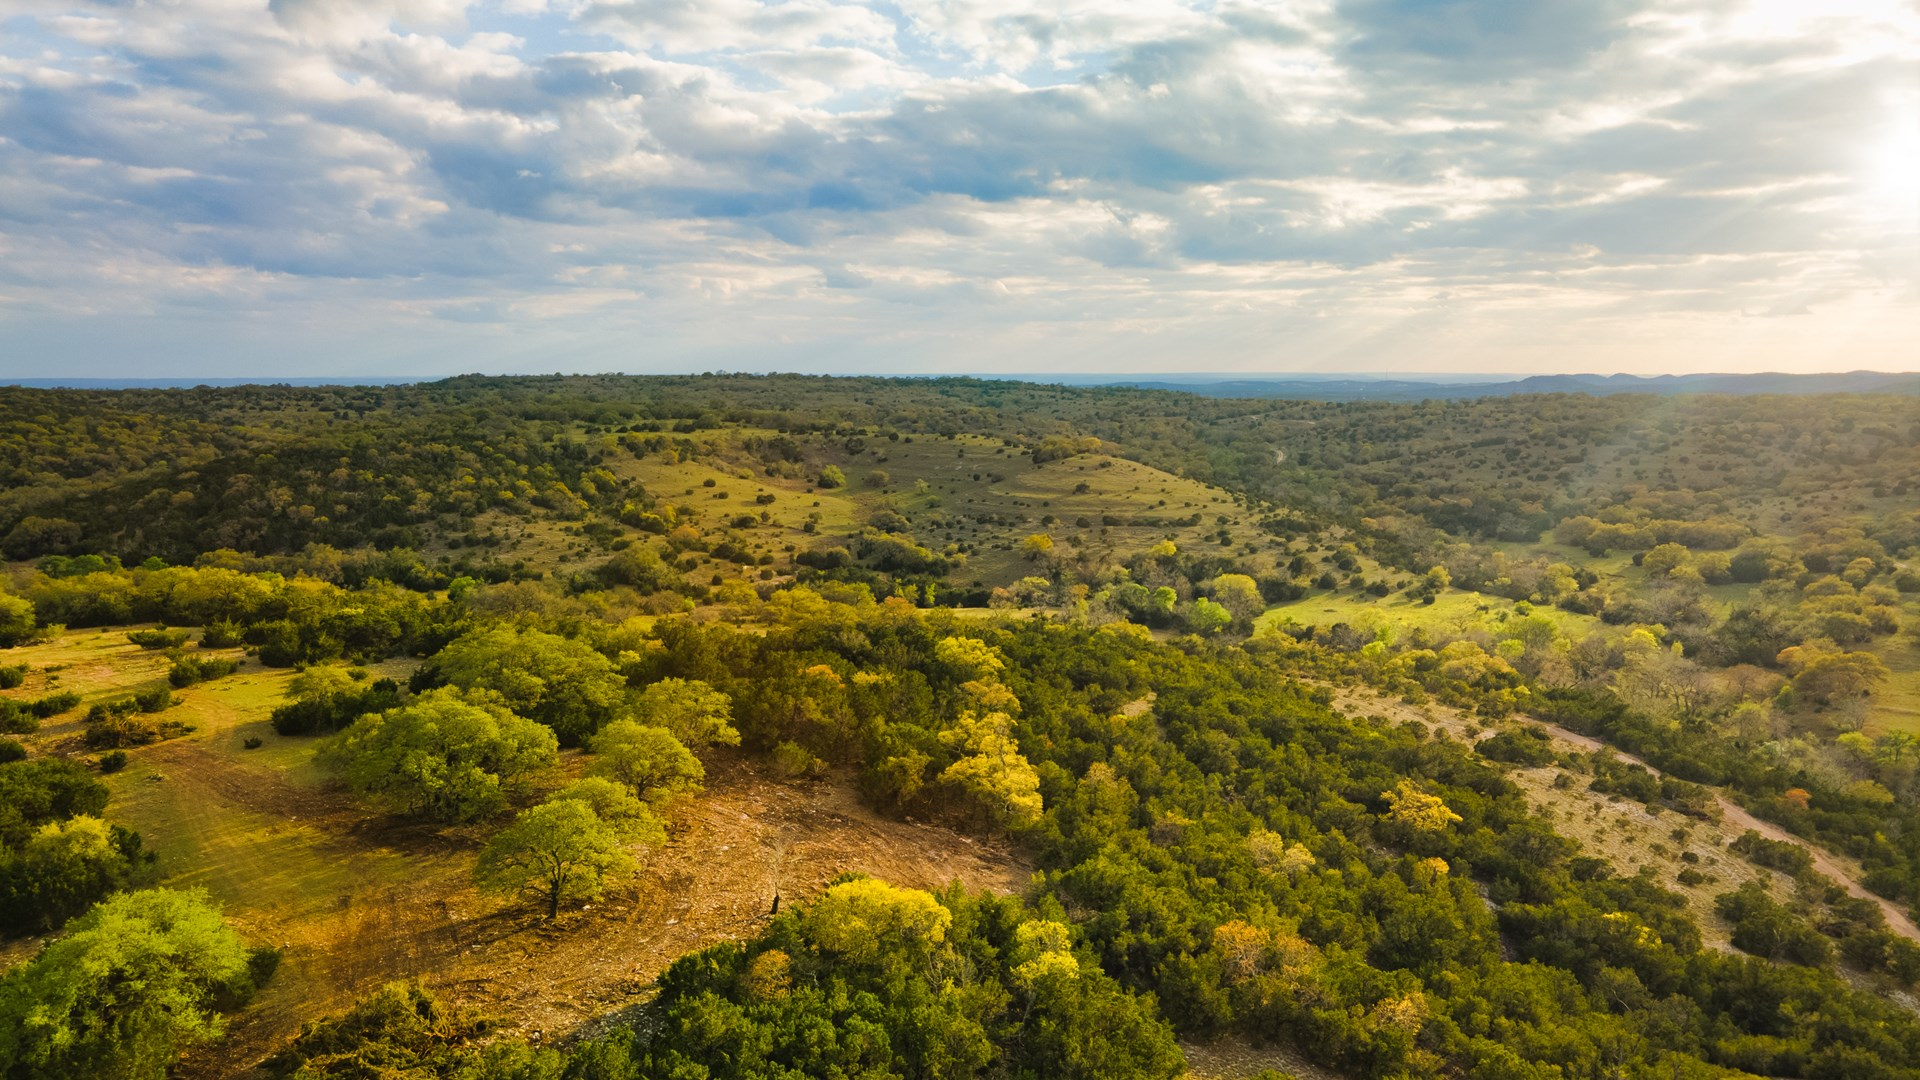 Texas Hill Country Land For Sale near Boerne and Blanco